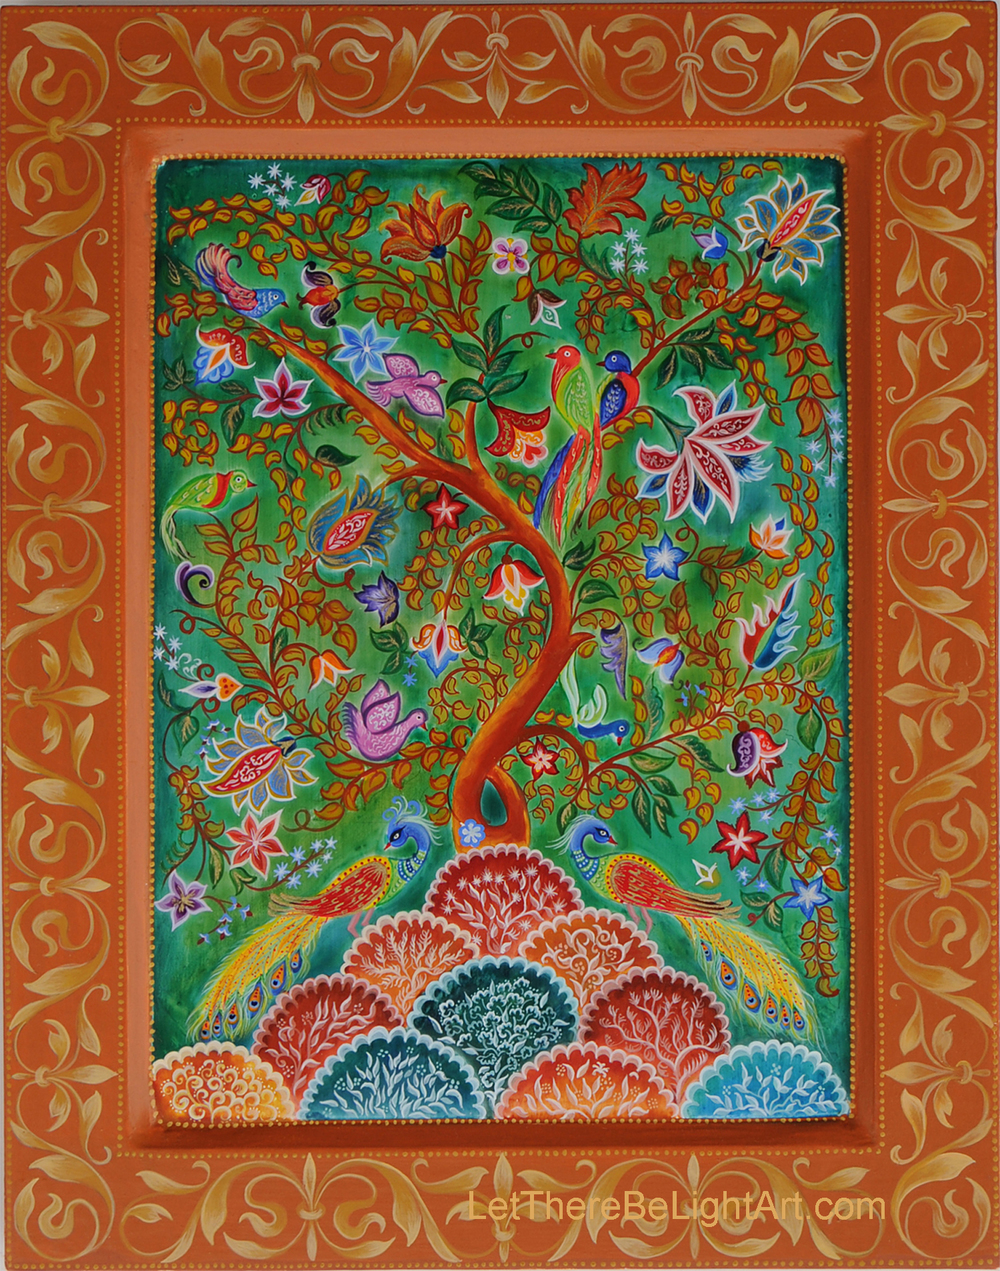 The Tree of Life - Paradise